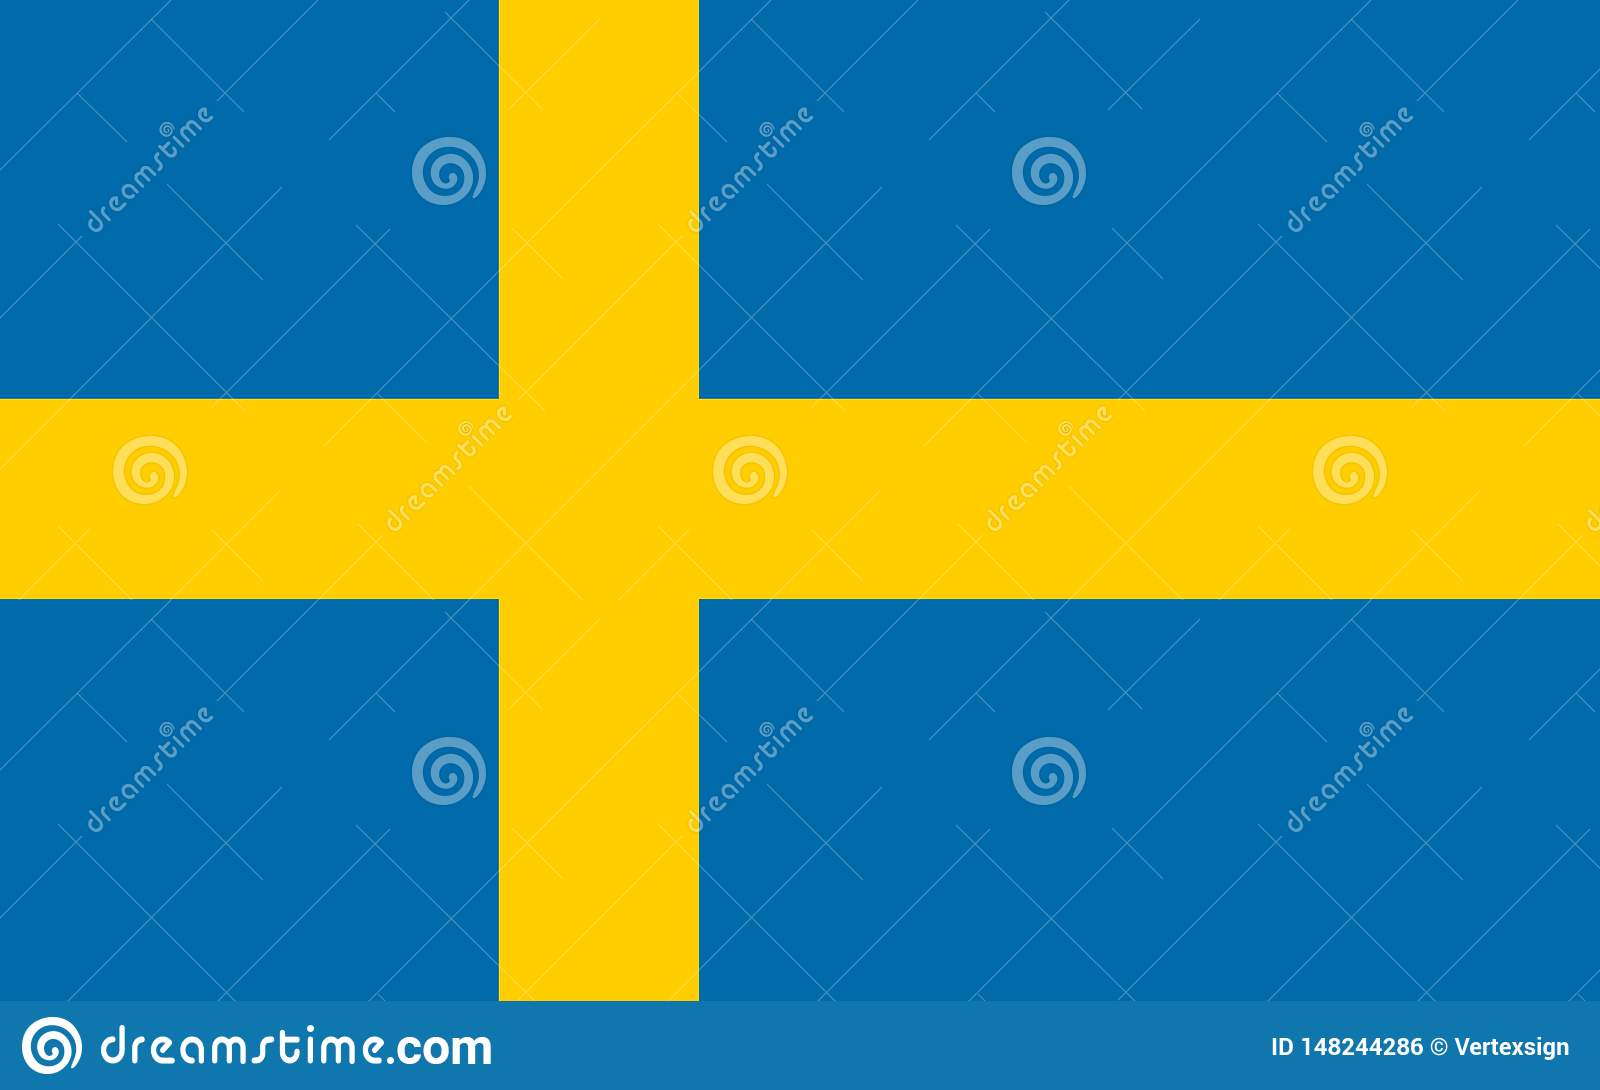 Sweden vector flag. Official flag of Sweden. Stockholm